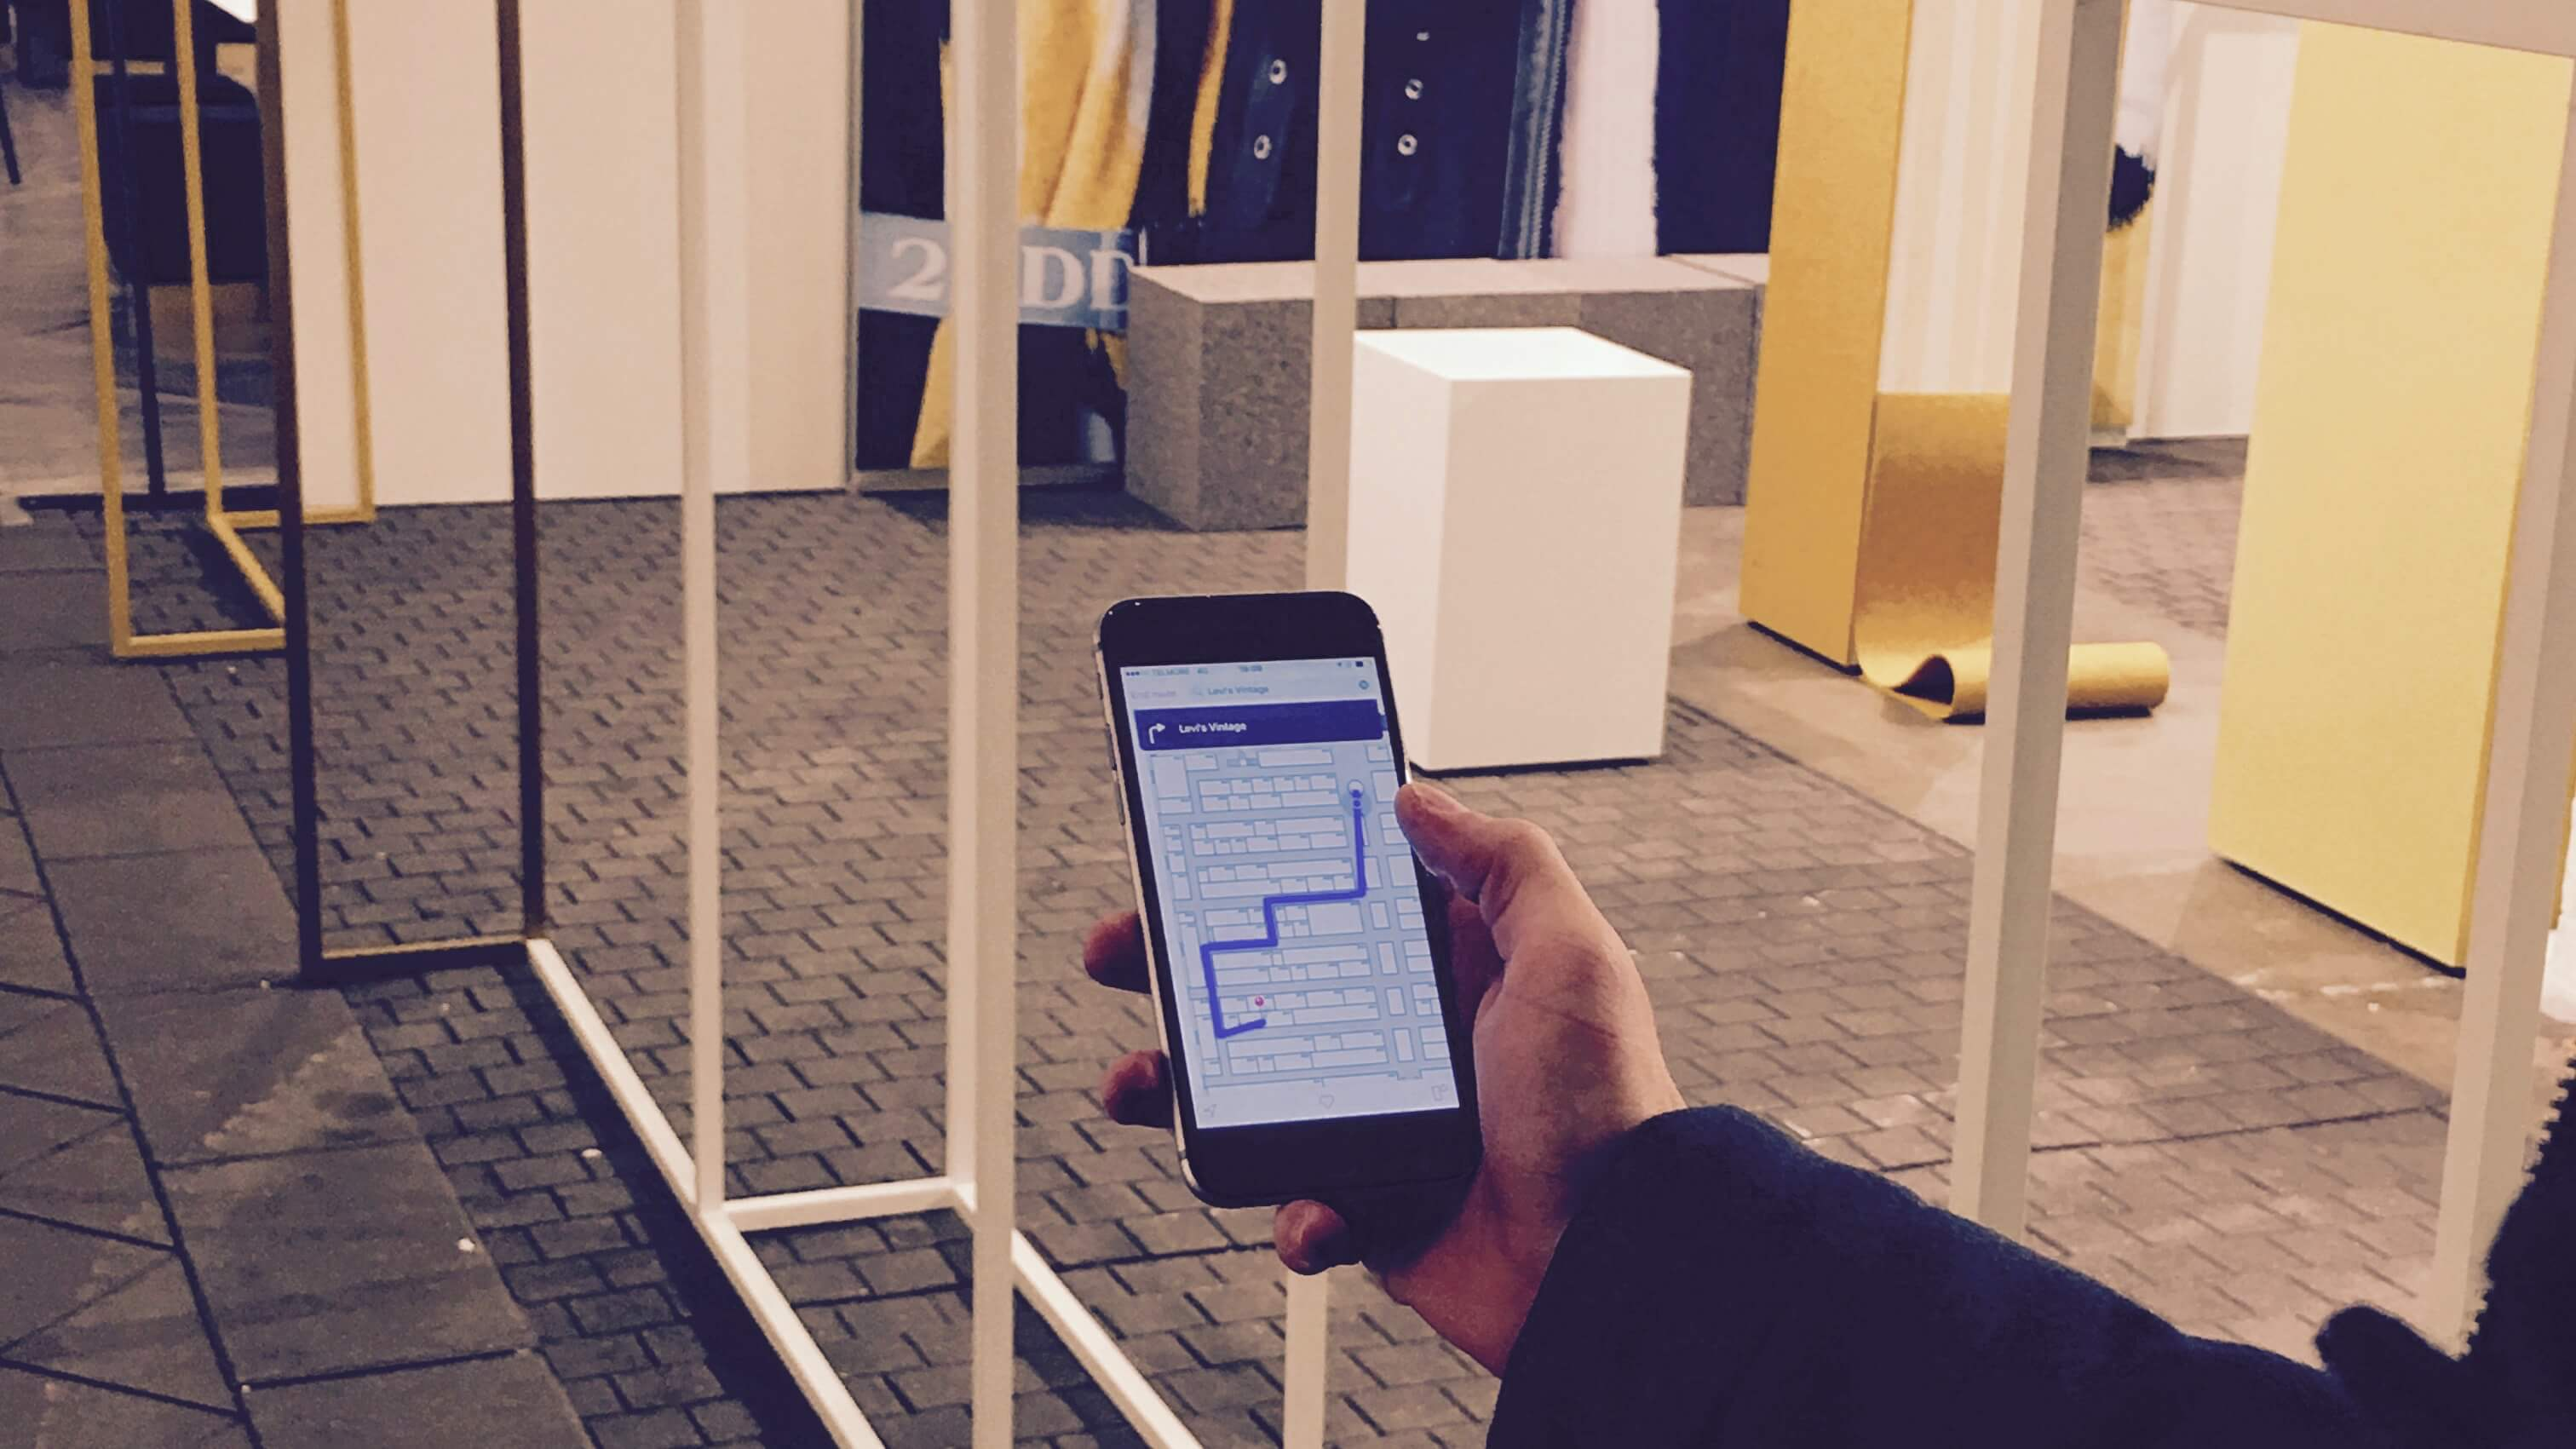 CPH_Fashion_trade_show_phone